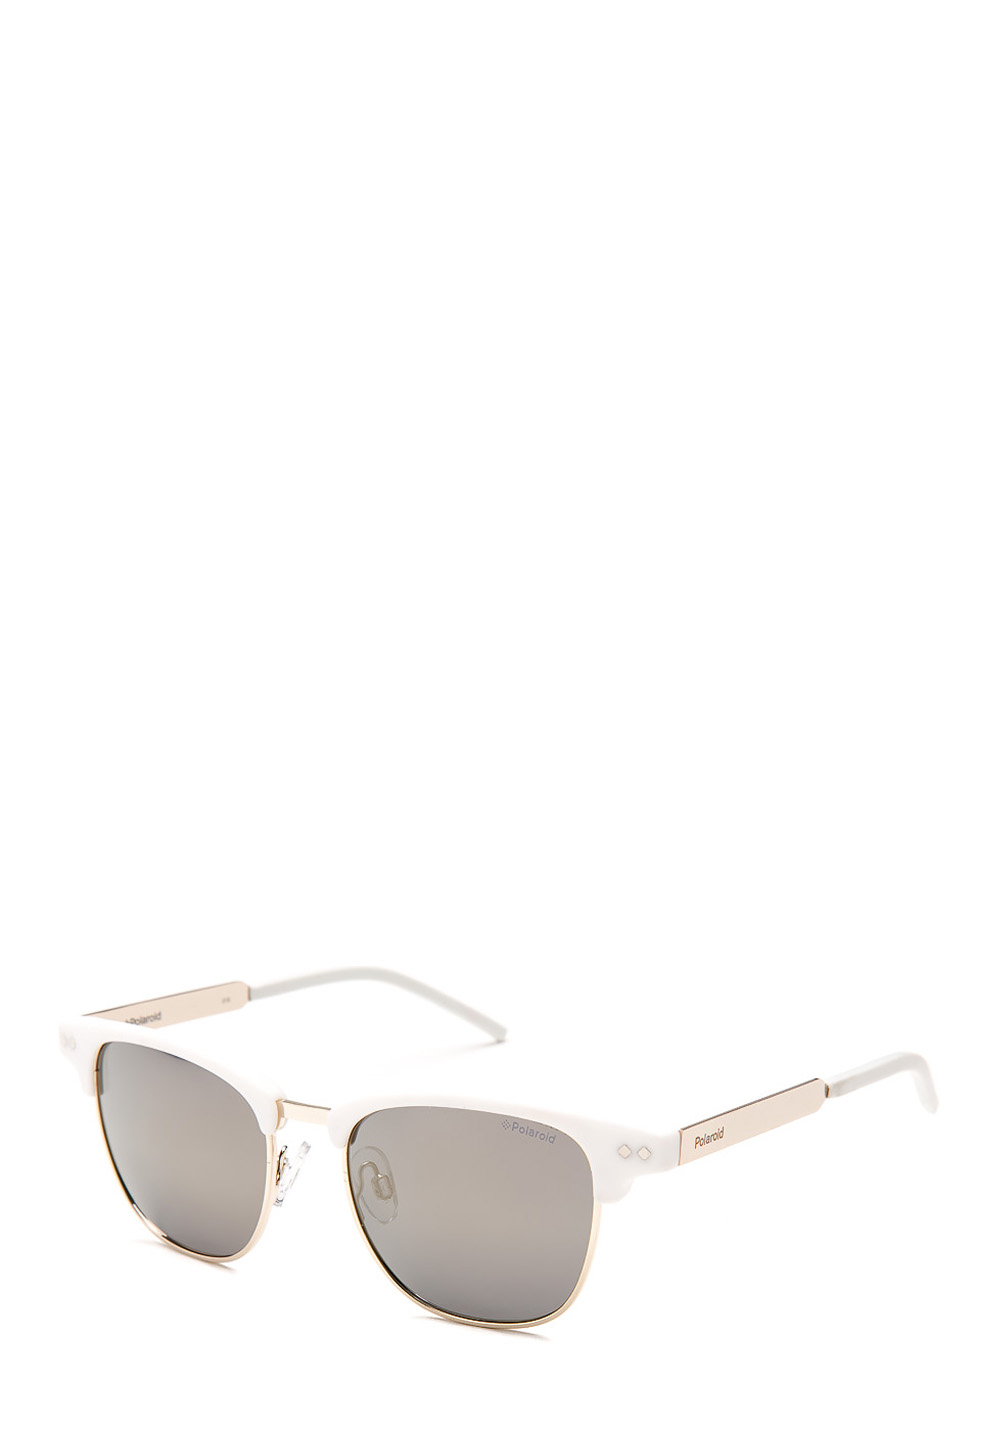 Sonnenbrille Pld1027, polarized, UV 400 gold